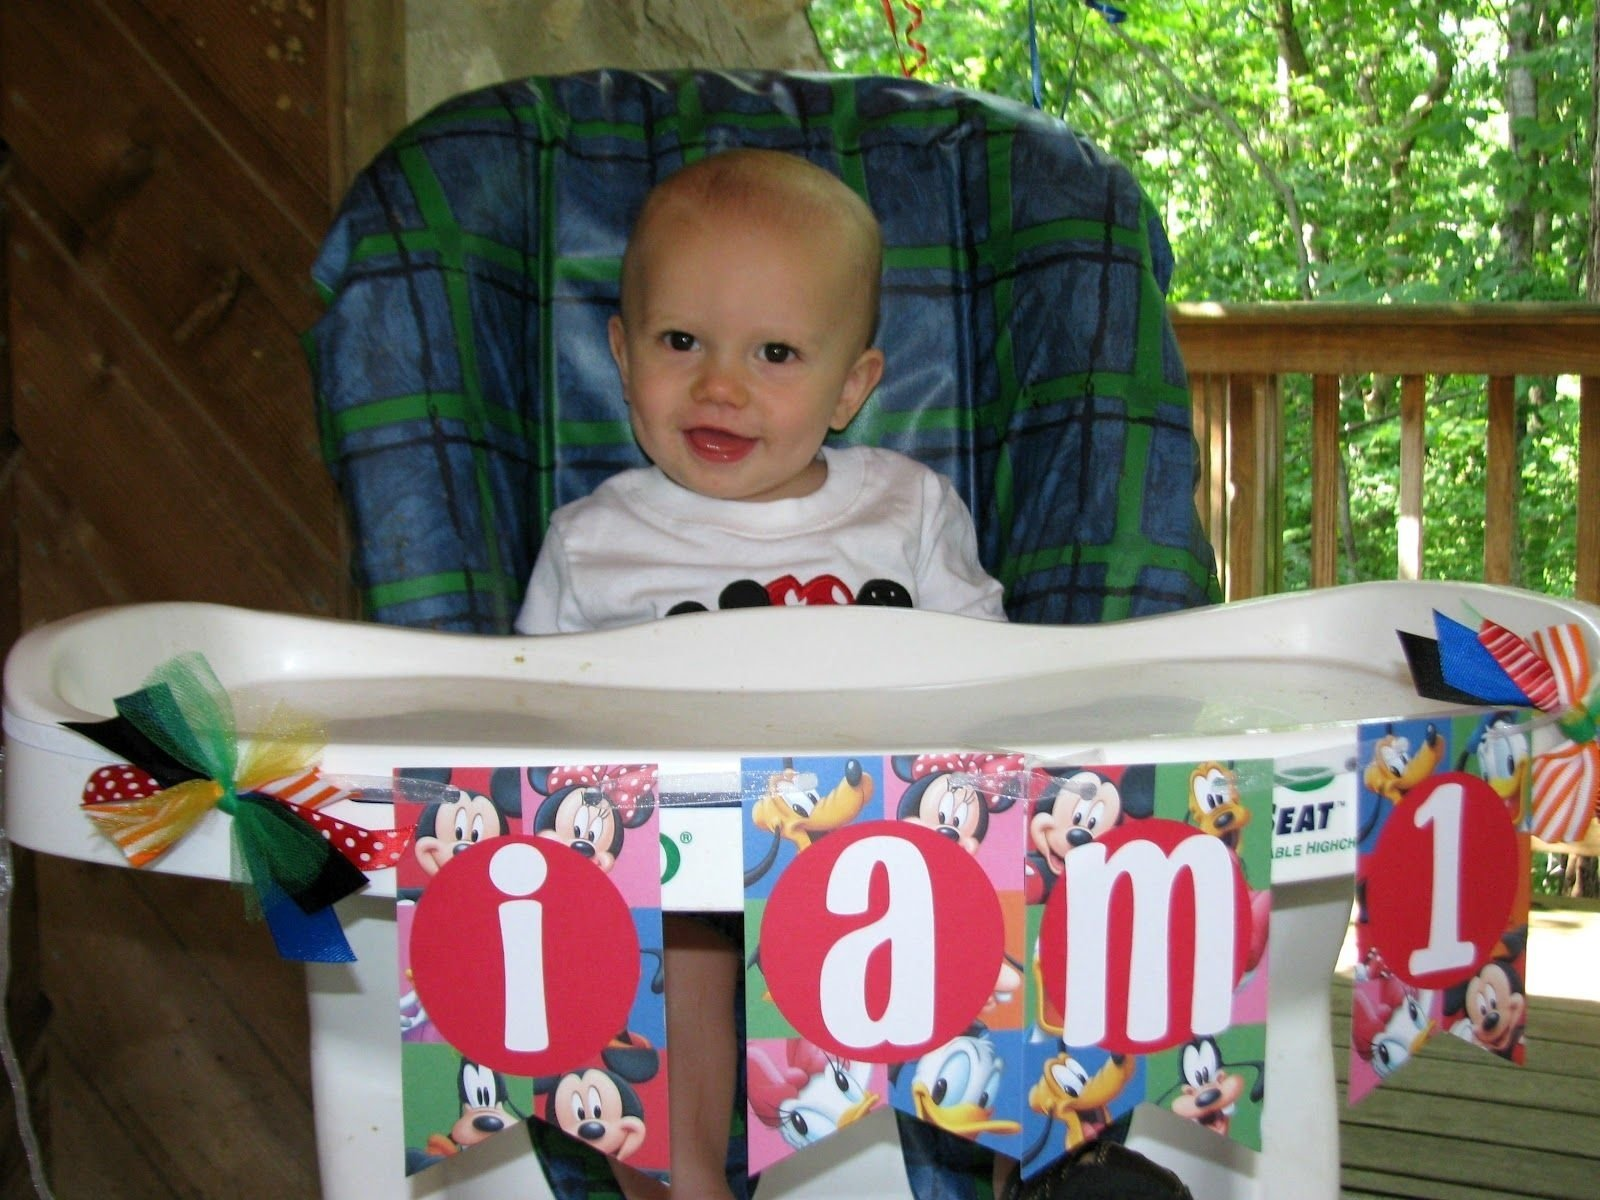 10 Perfect Mickey Mouse Party Ideas For One Year Old birthday party ideas for 1 year old boy real life parties mickey 2021